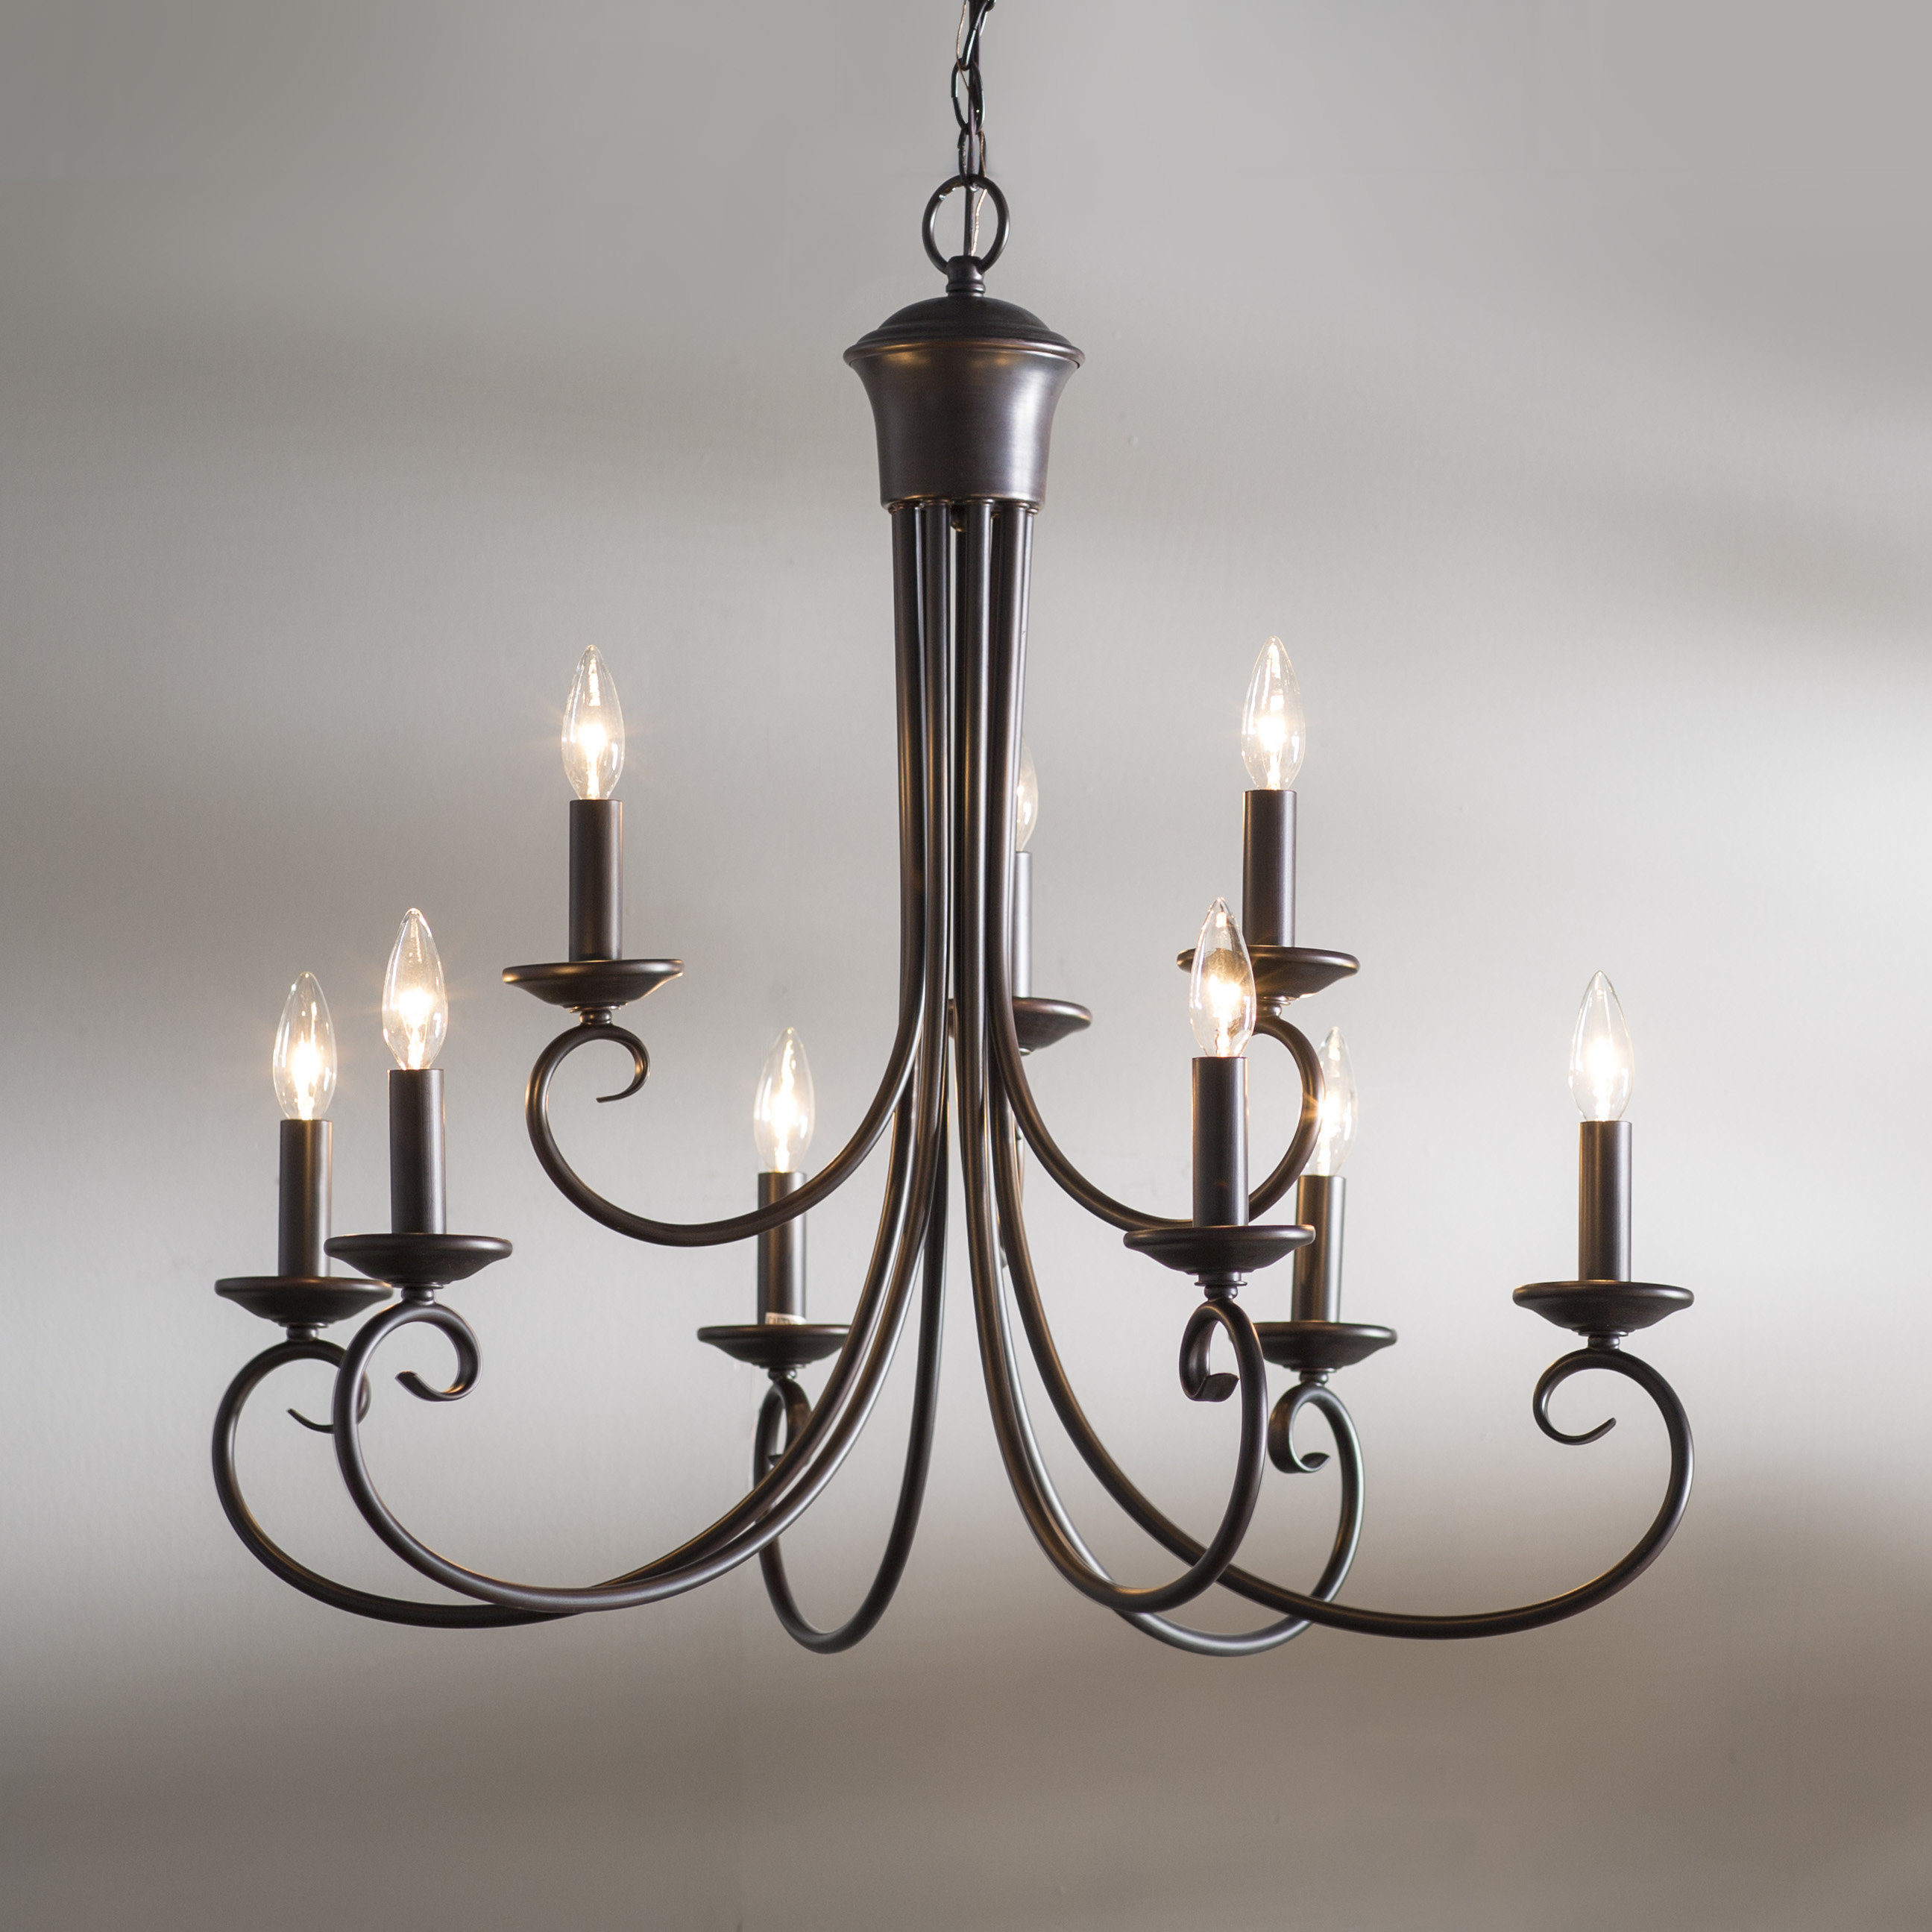 Kenedy 9 Light Candle Style Chandelier For Gaines 9 Light Candle Style Chandeliers (View 4 of 30)